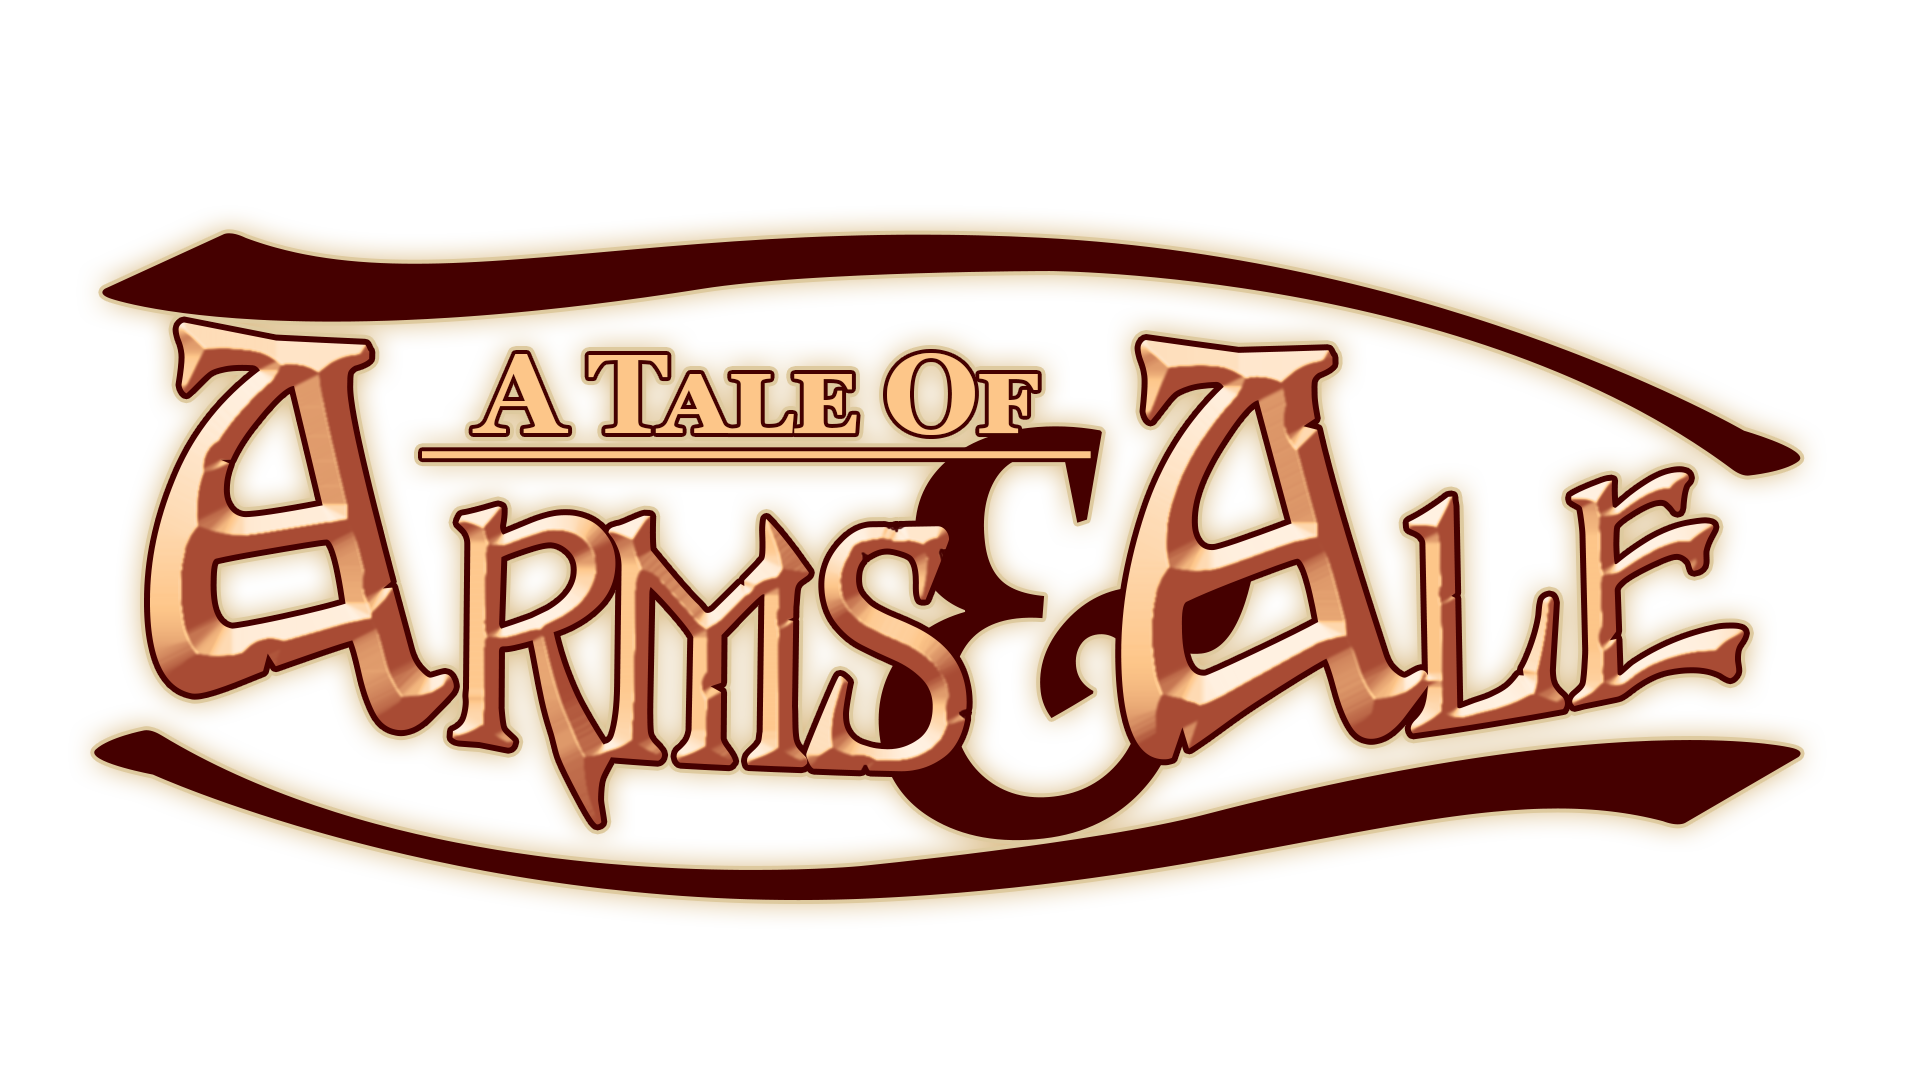 A Tale of Arms & Ale